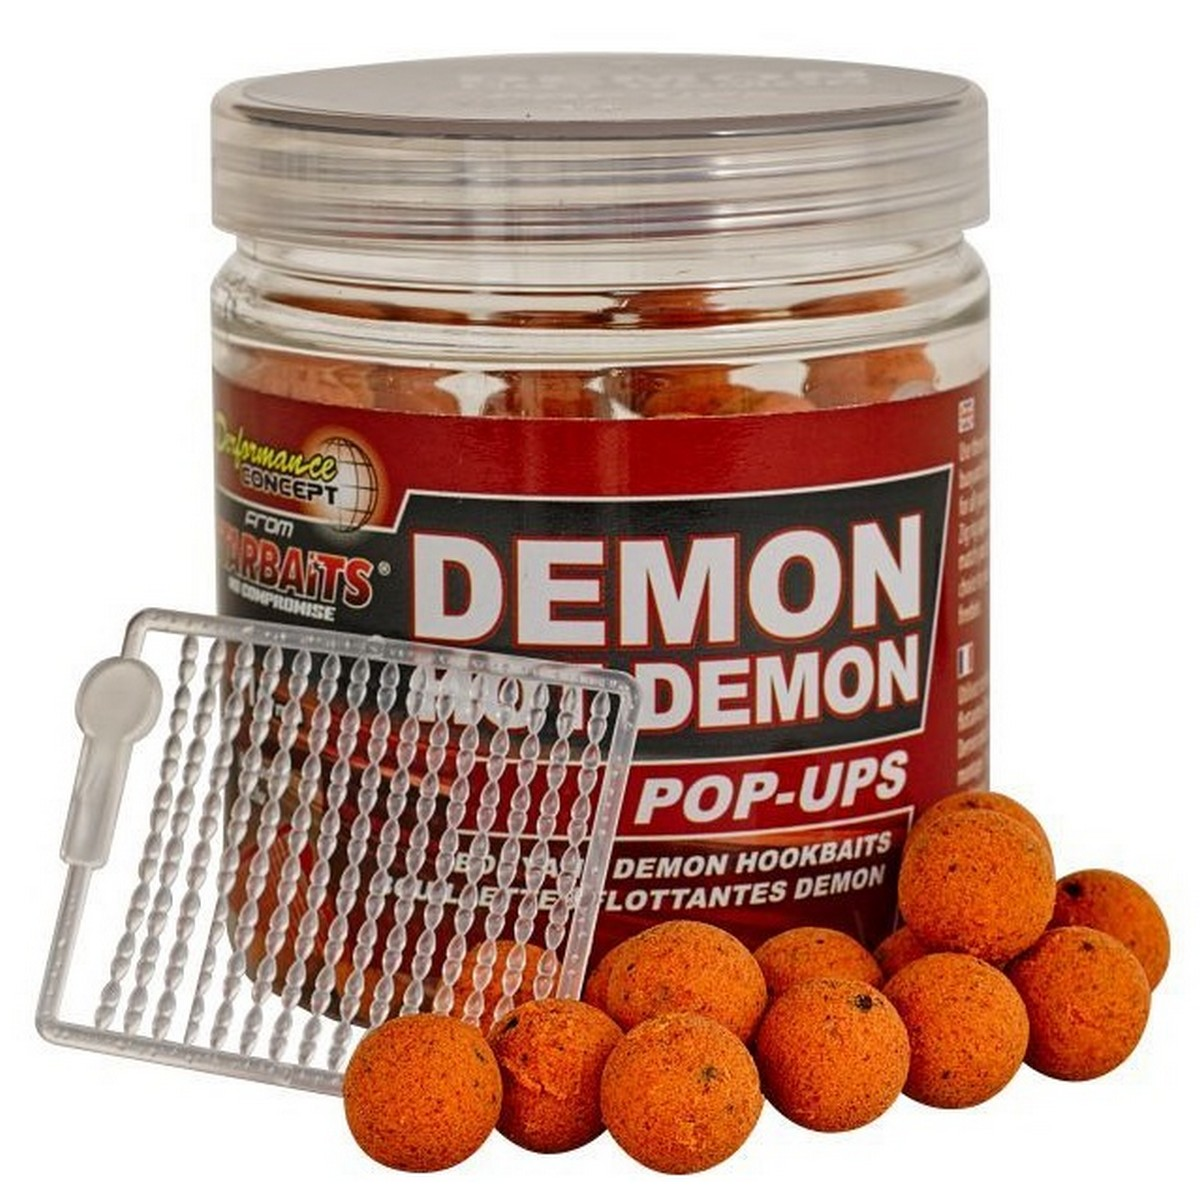 StarBaits Demon Hot Demon Pop Ups - плуващи топчета